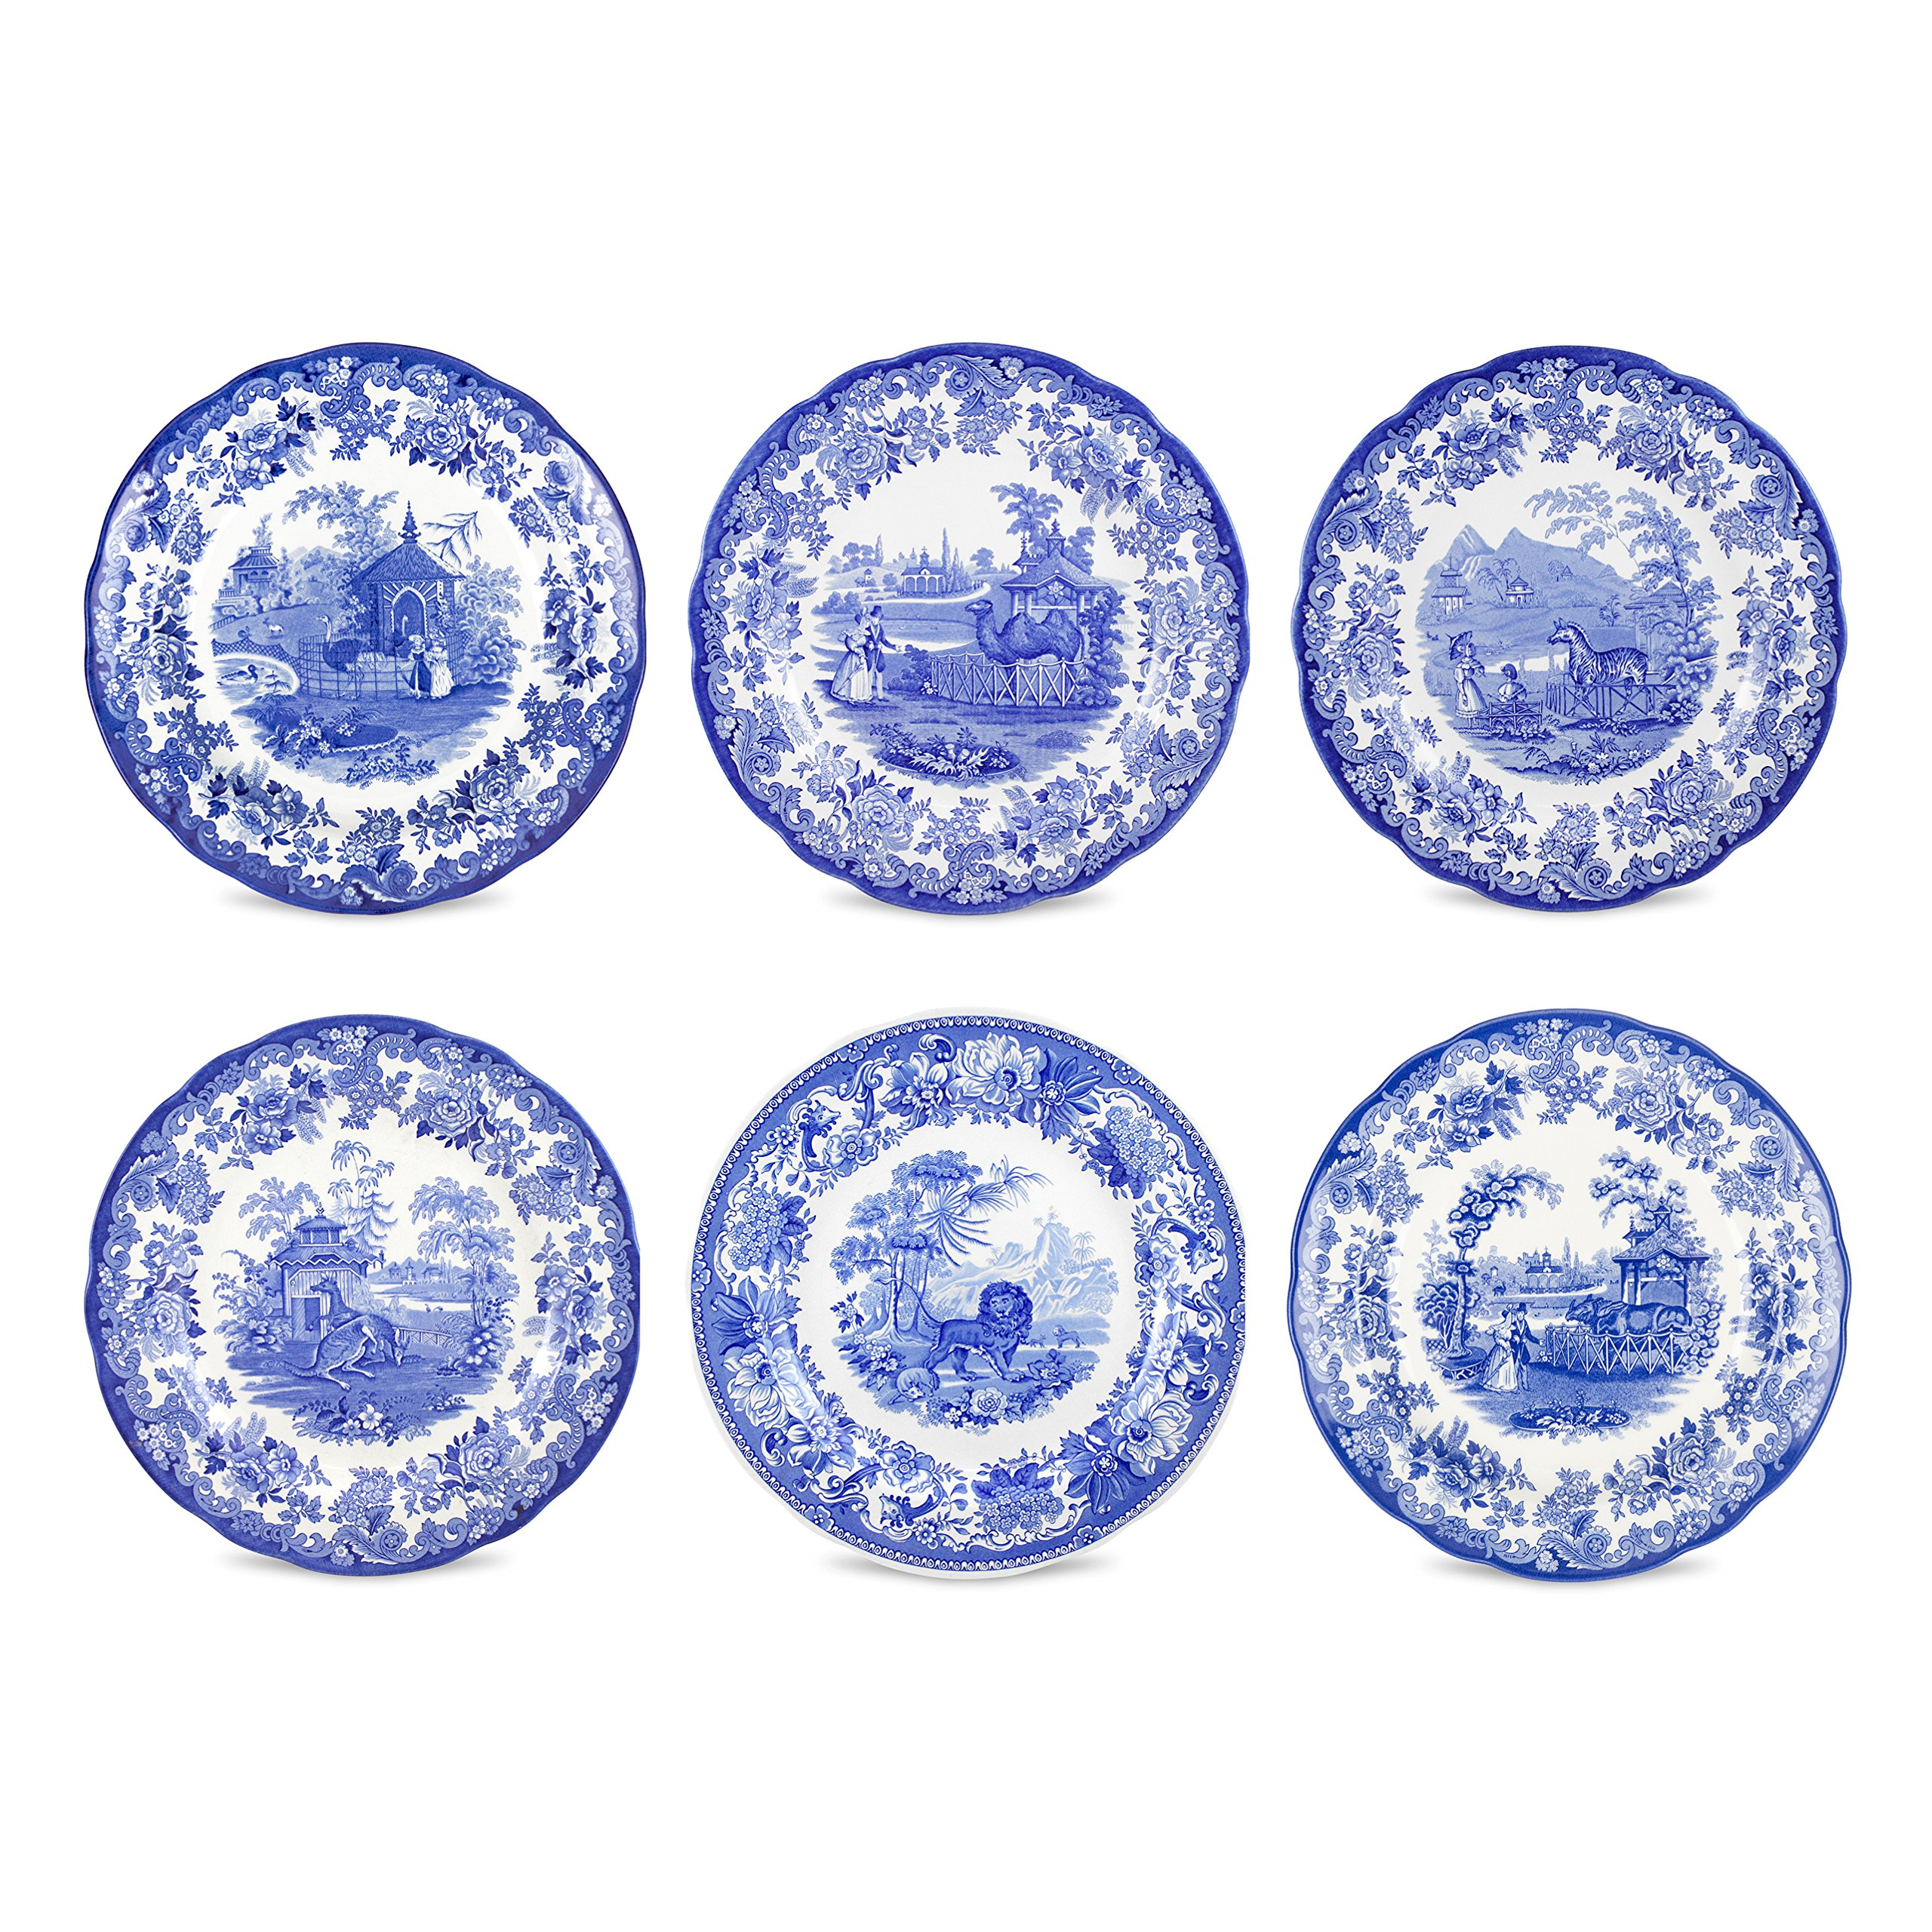 Spode Blue Room Zoological Plates, Set of 6 Assorted Motifs by Spode (Image #1)